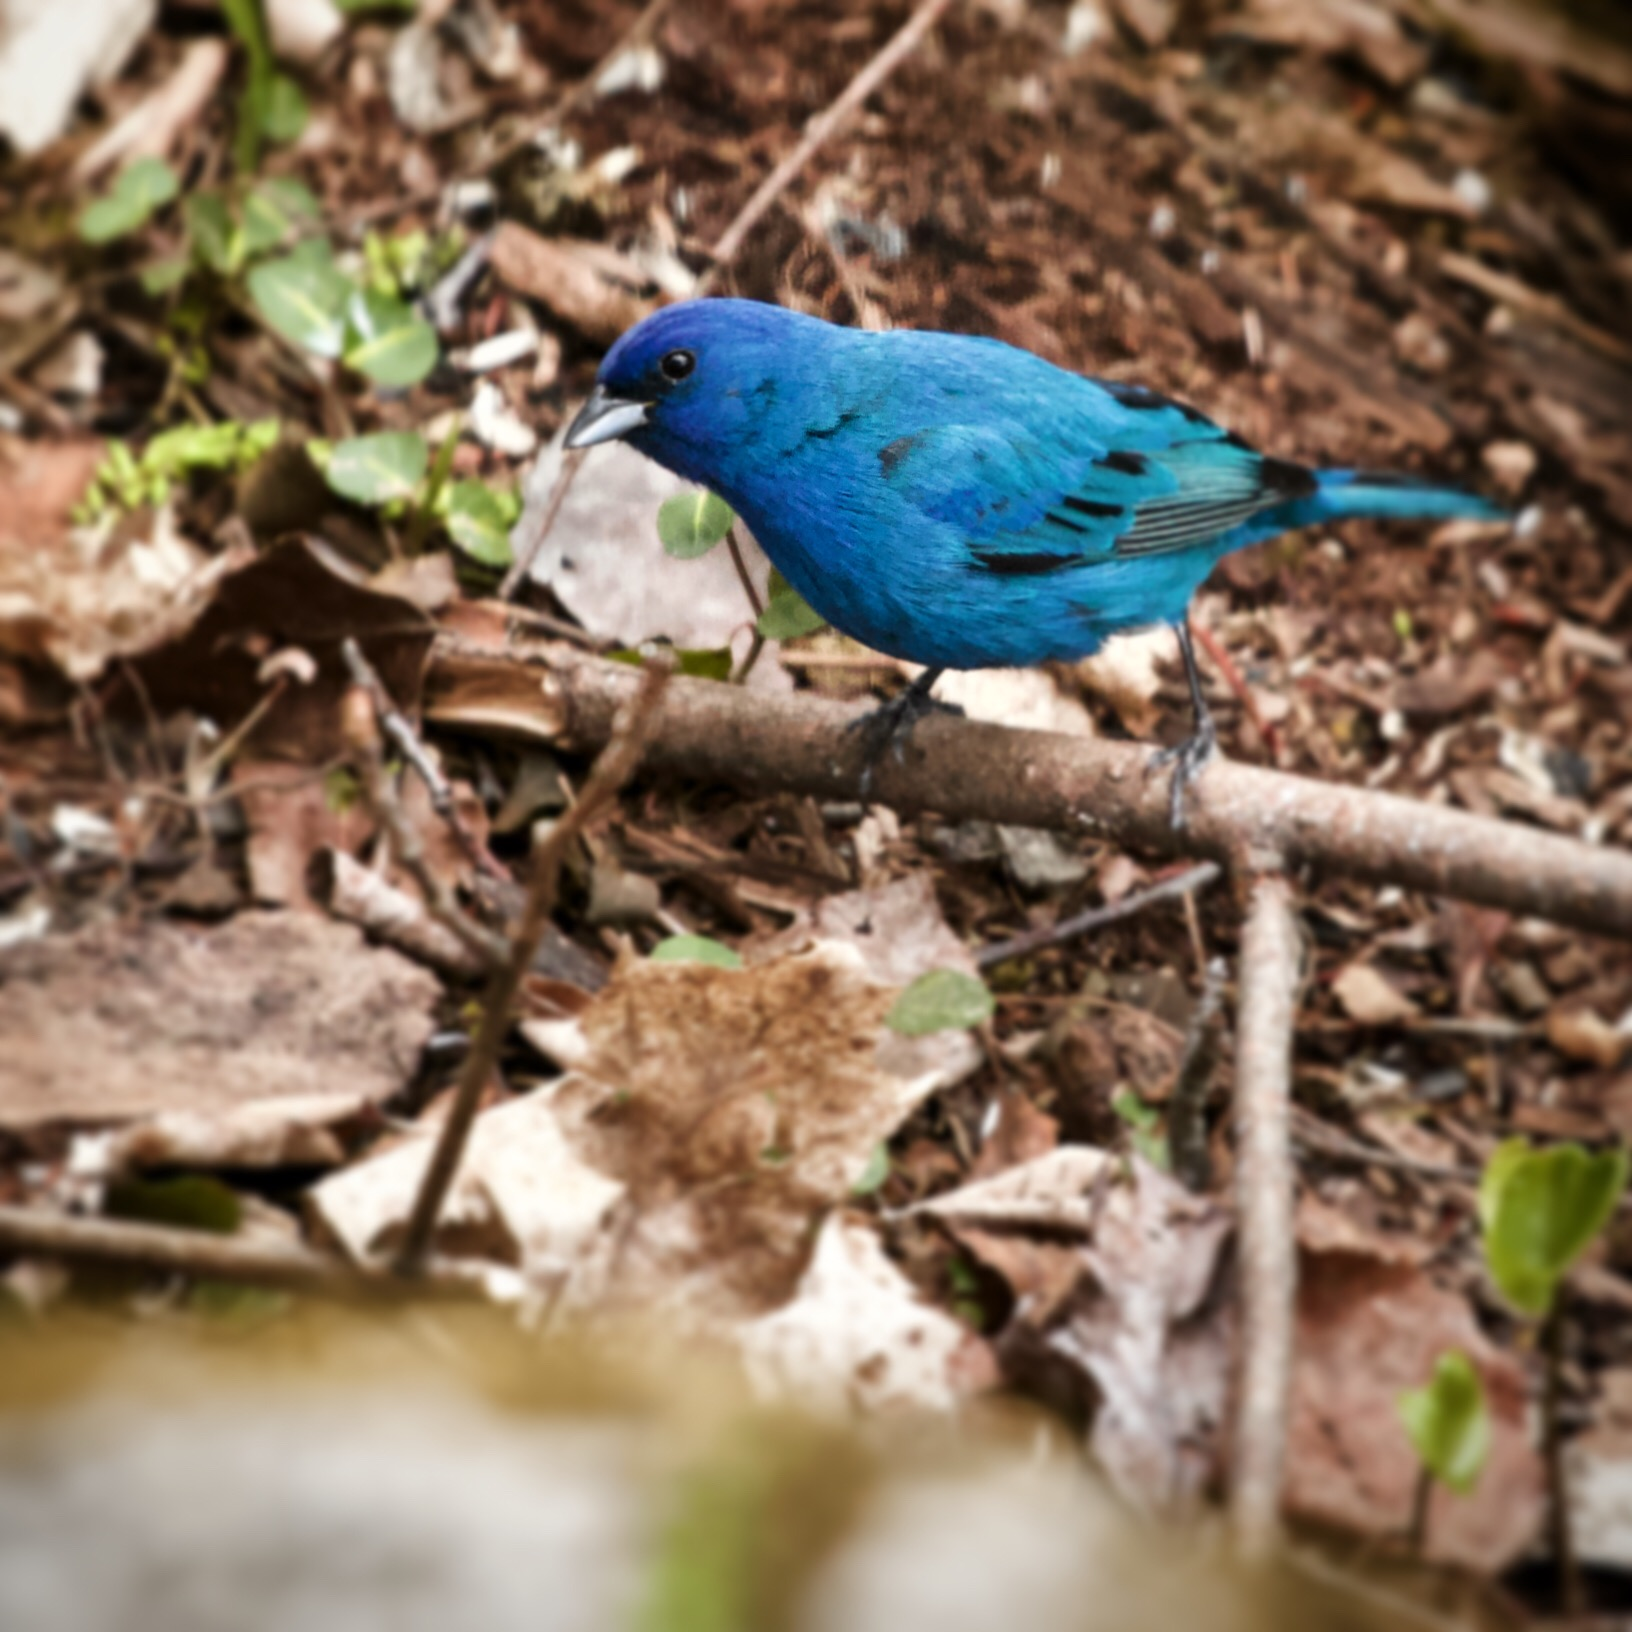 An Indigo Bunting scratching around for fallen seeds just outside the cabin window.